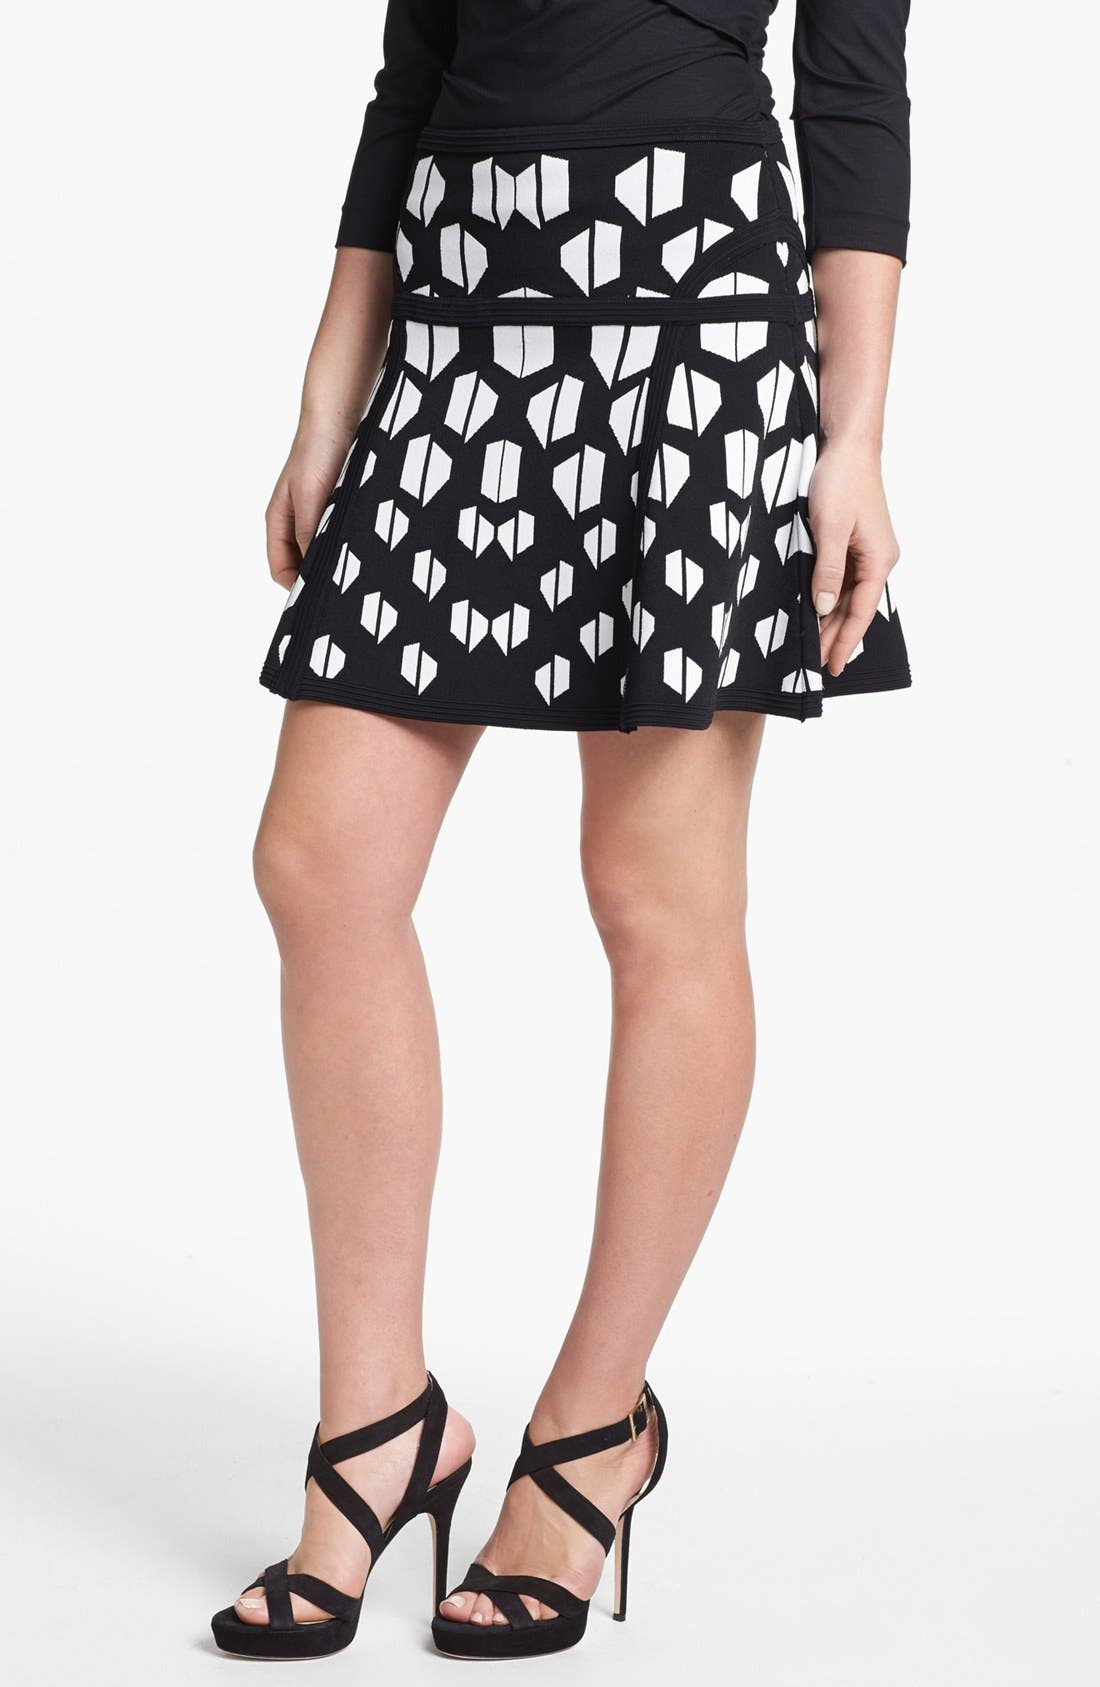 'Flote' Skirt,                         Main,                         color, Black White